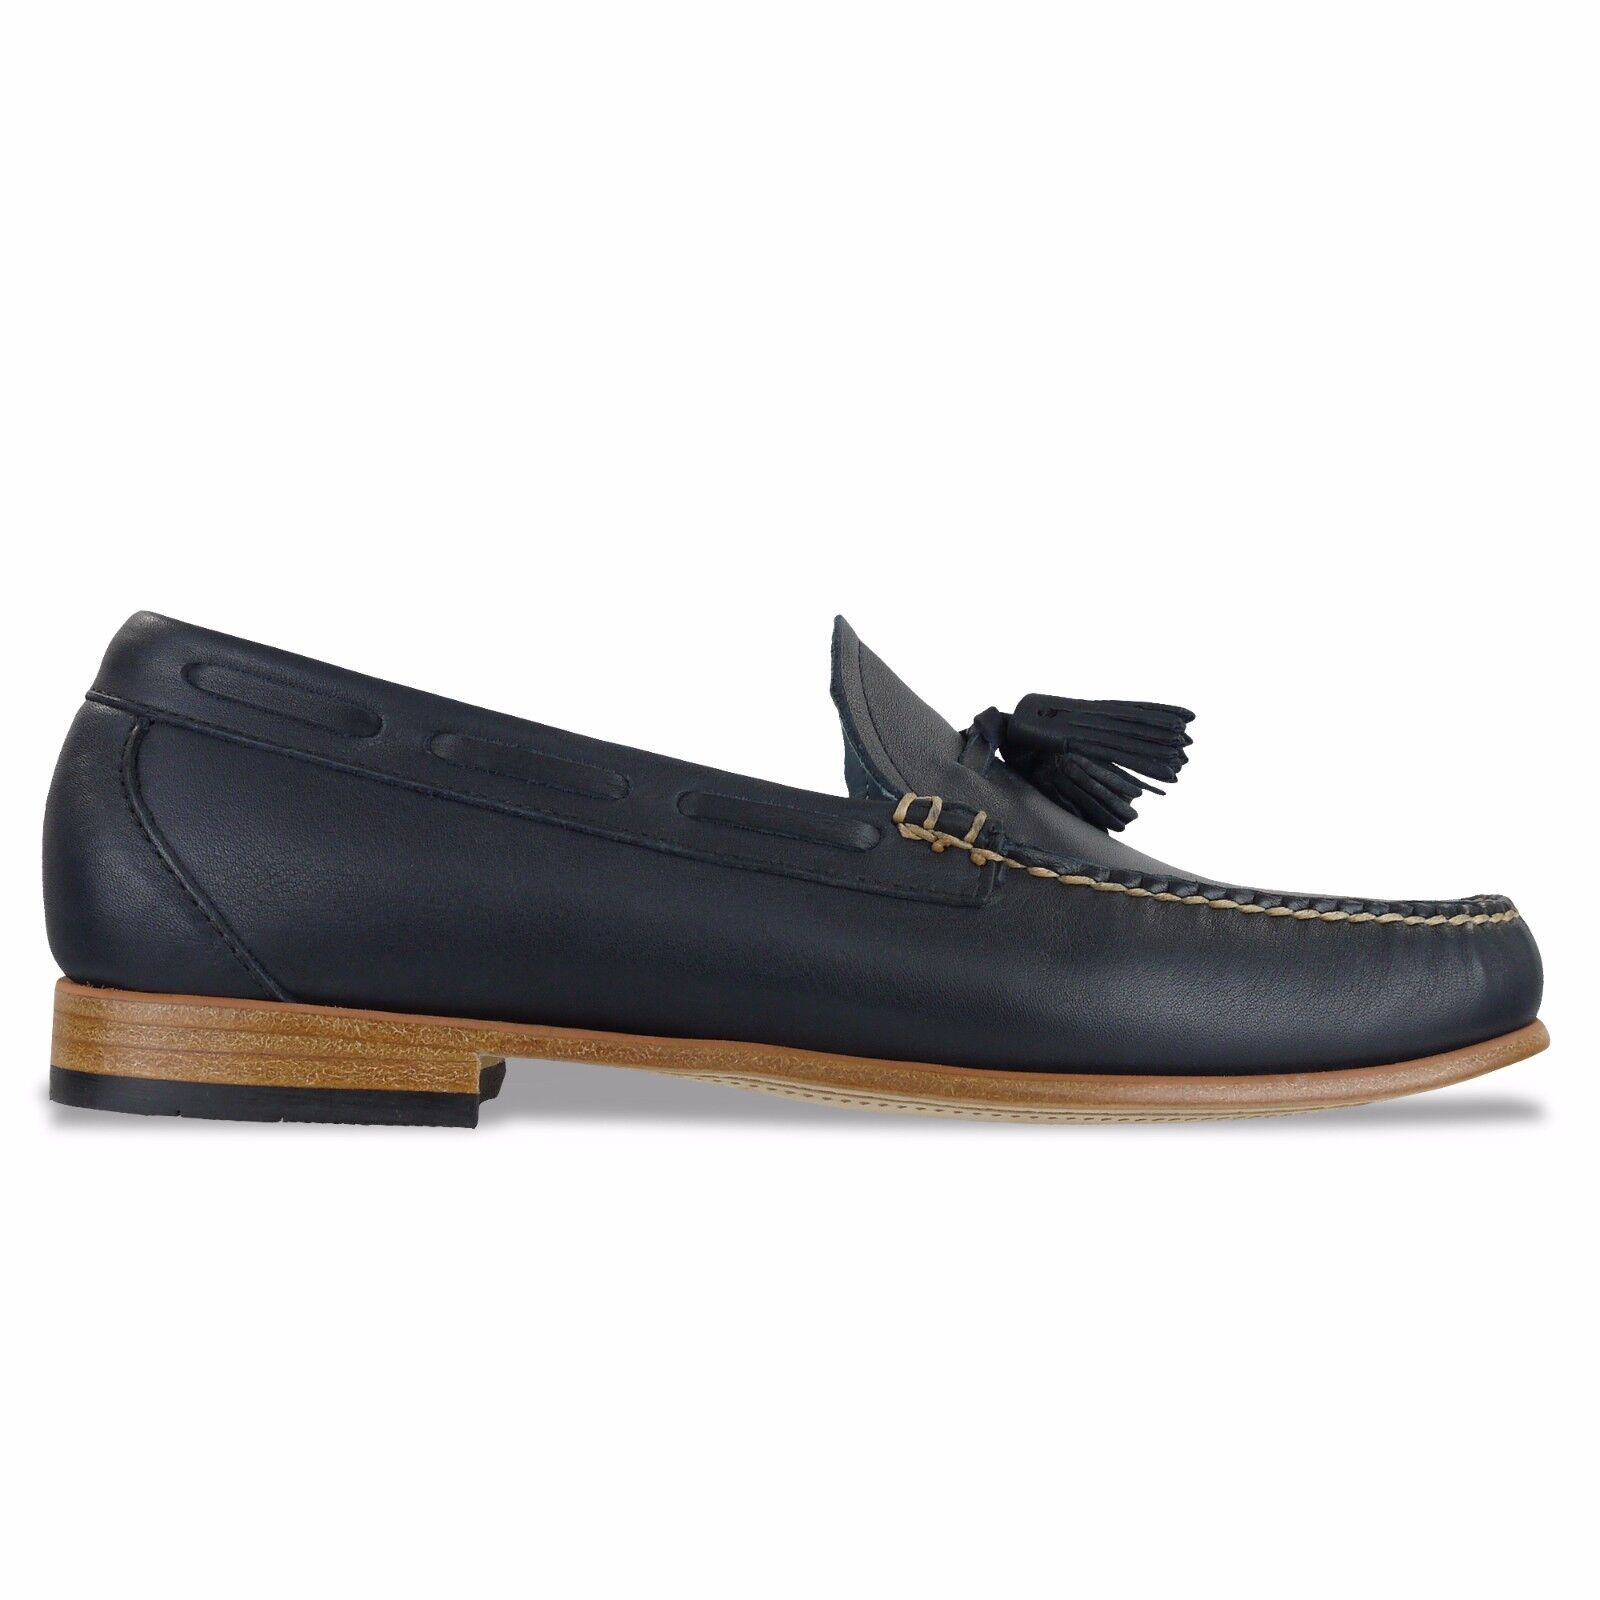 G.H BASS WEEJUNS Schuhe - PALM SPRINGS LARKIN LEATHER LOAFER - NAVY, BROWN - BNIB